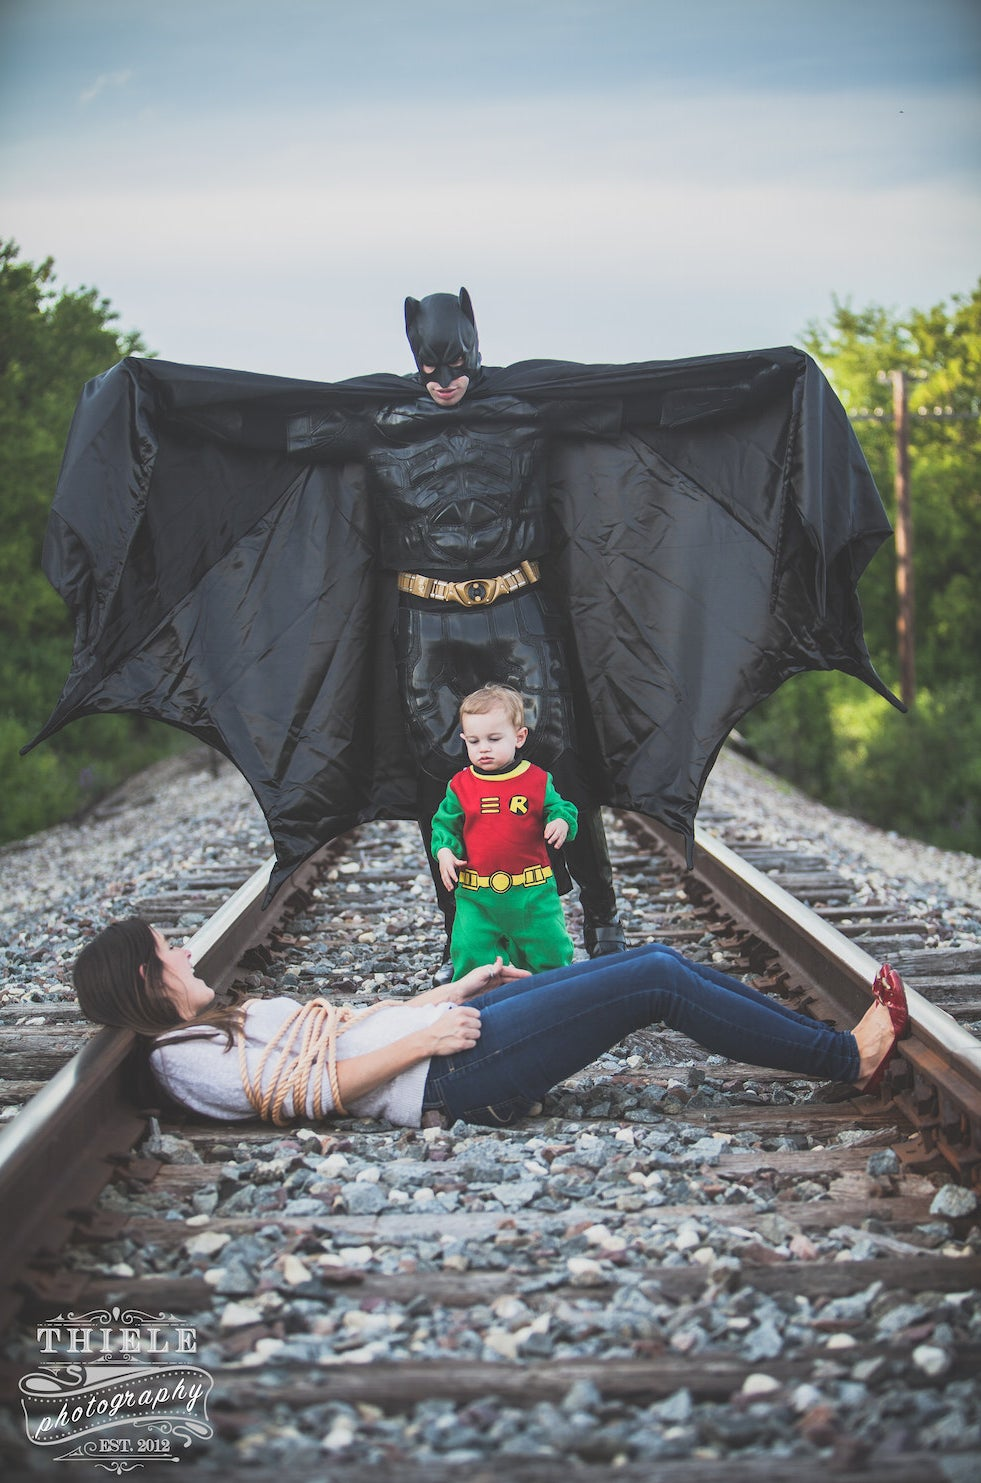 This Wife Surprised Her Husband With An Amazing Batman-Themed Family Photo Shoot